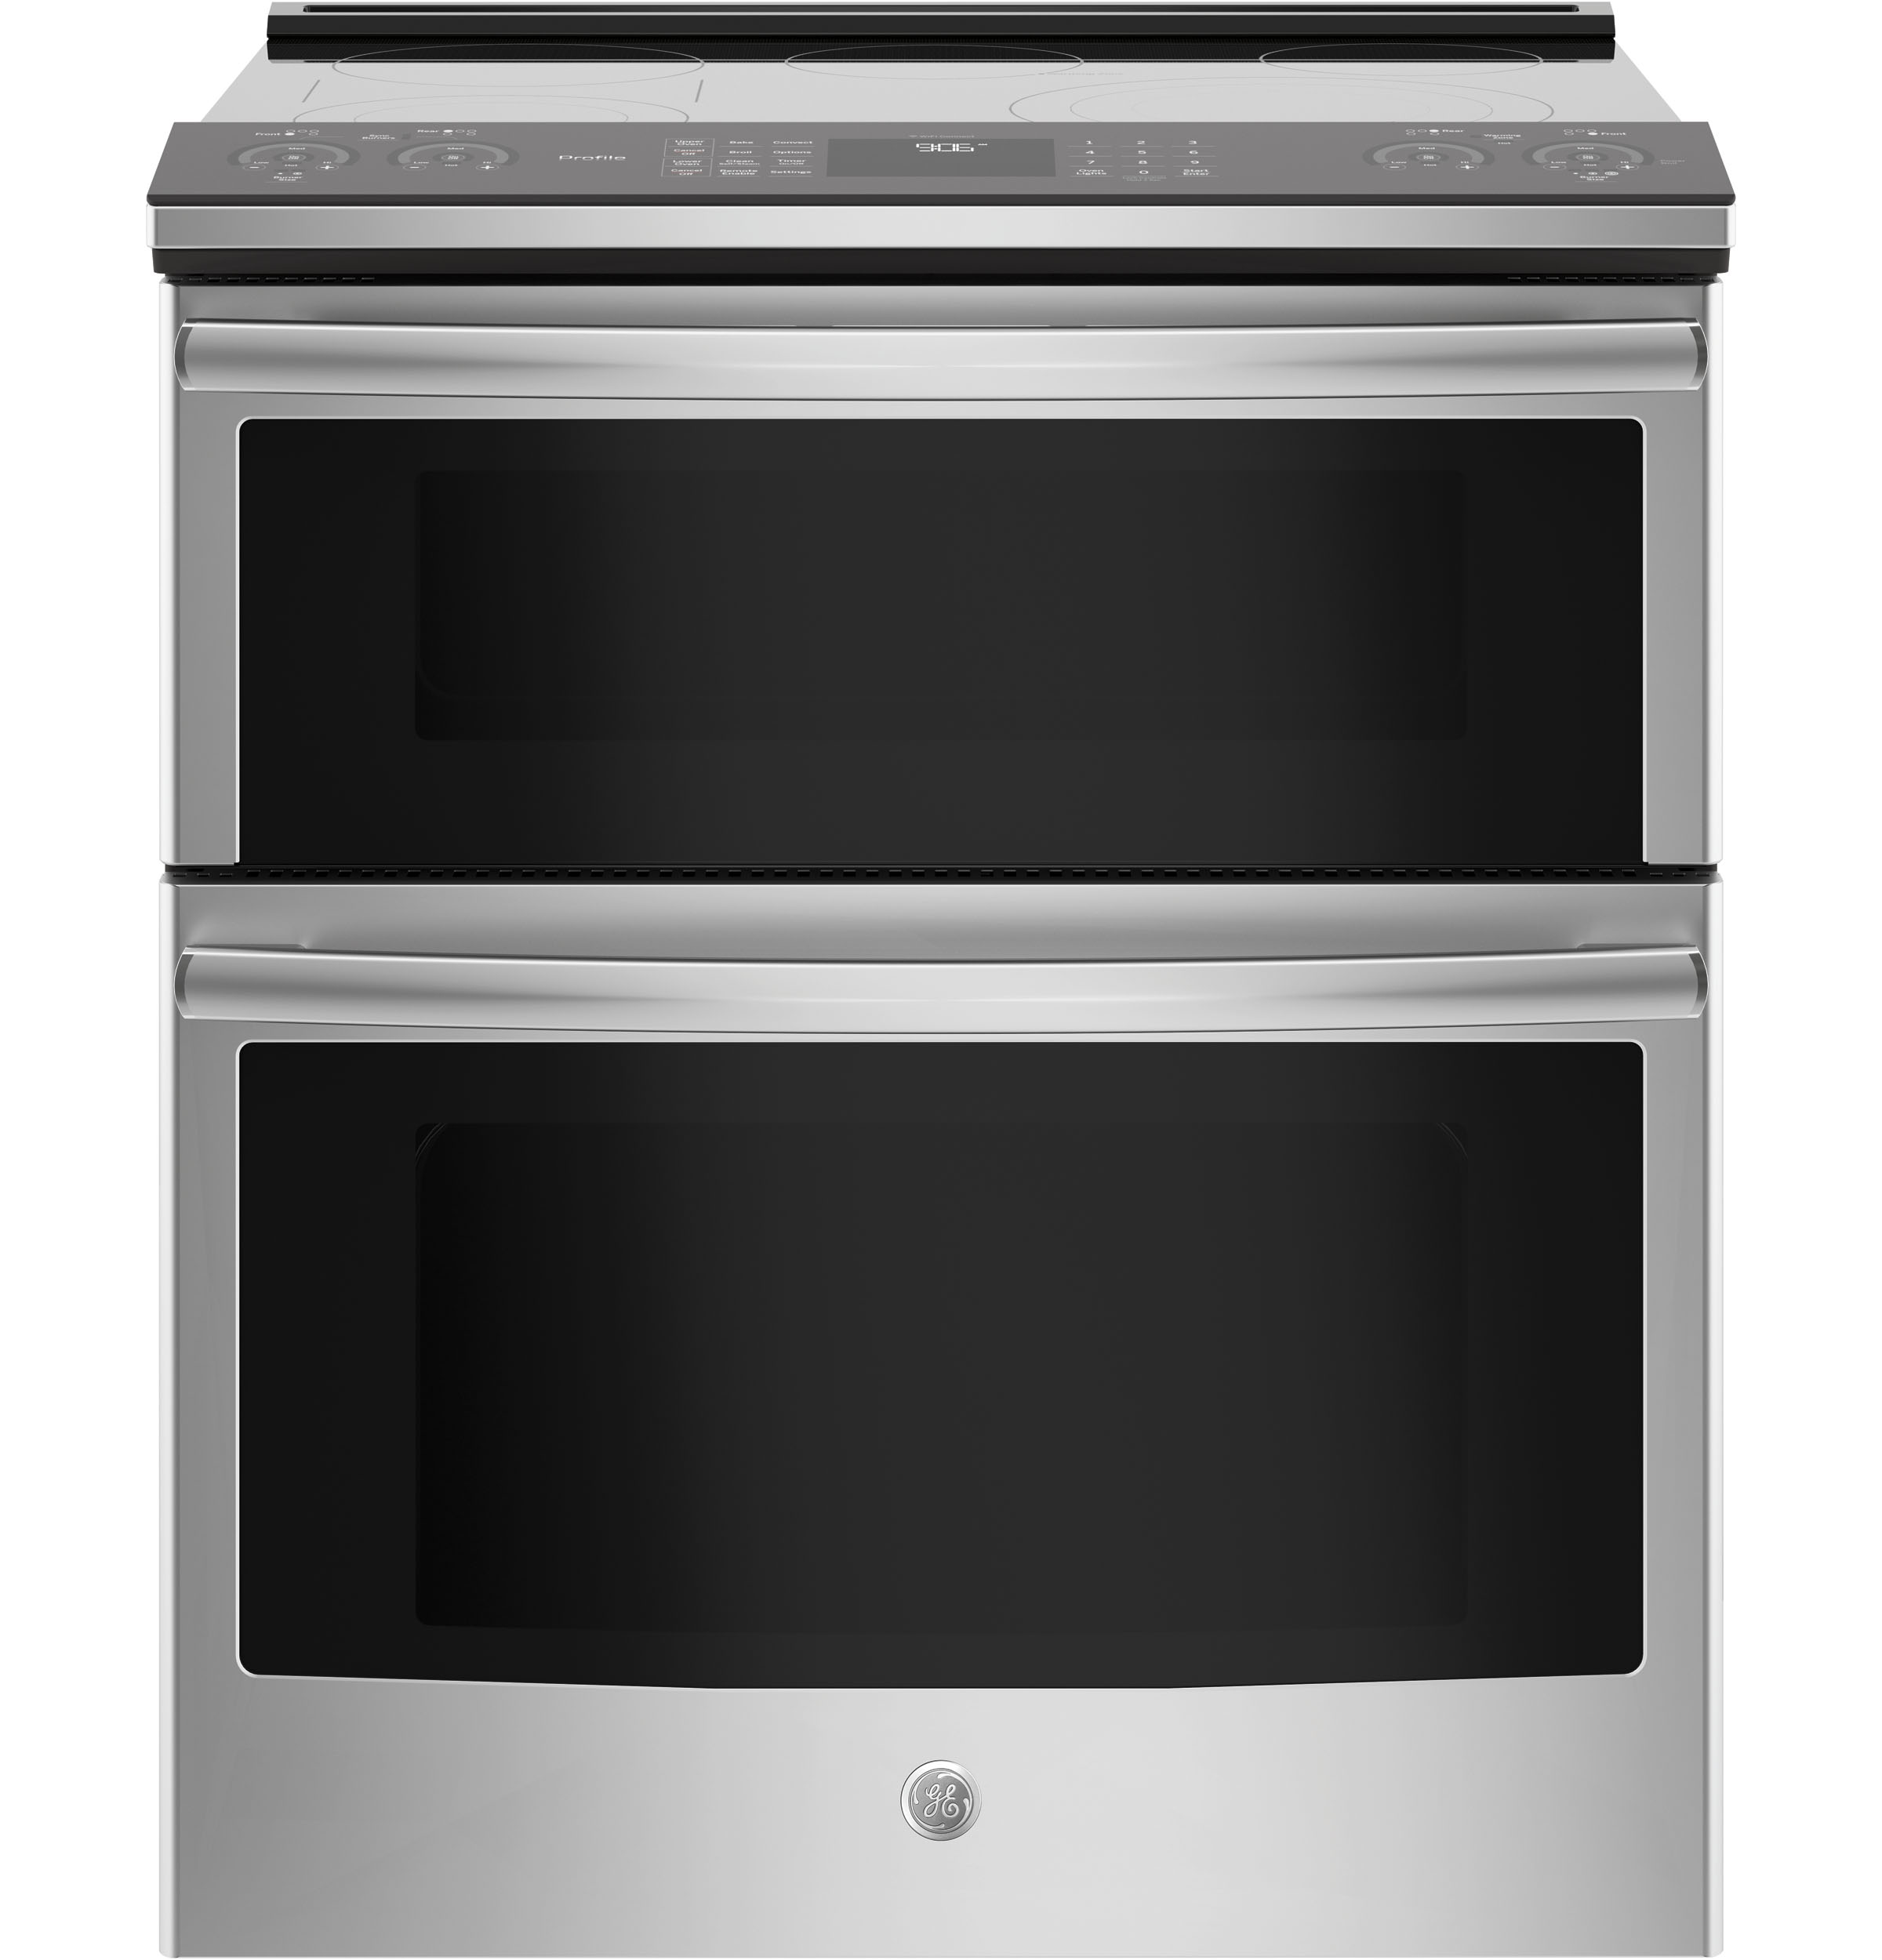 "Image of ""GE Profile Series PS960SLSS 30"""" Slide-In Electric Double Oven Convection Range - Stainless Steel, Stainless steel"""